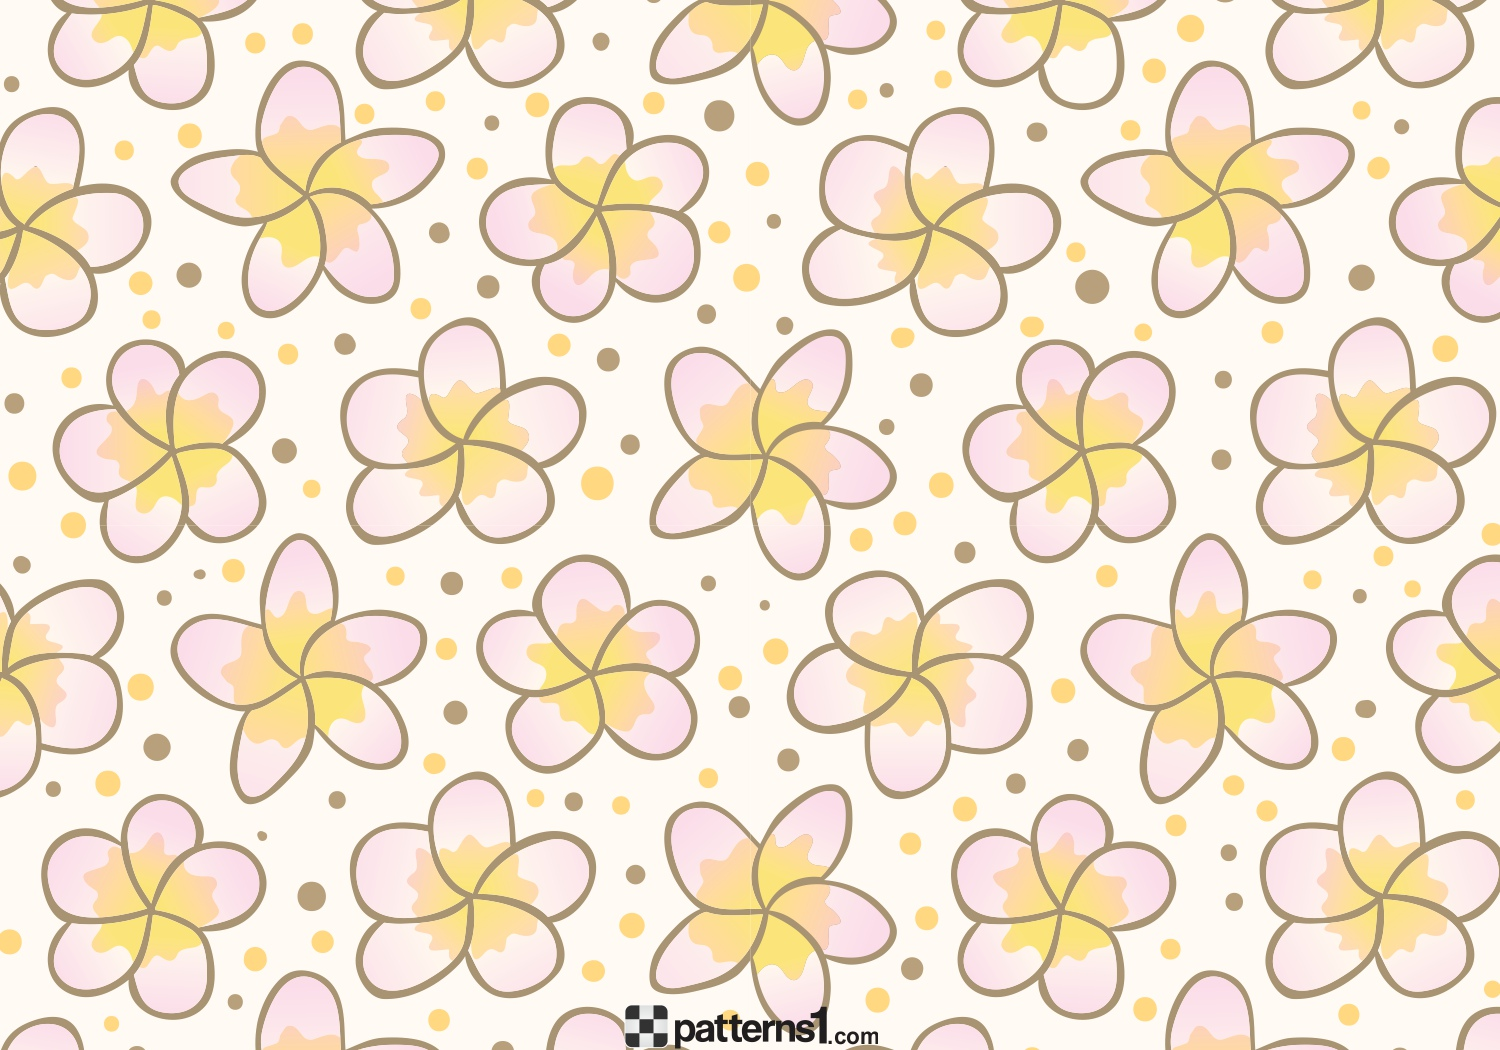 Clipart background patterns jpg free Clipart background patterns - ClipartFest jpg free